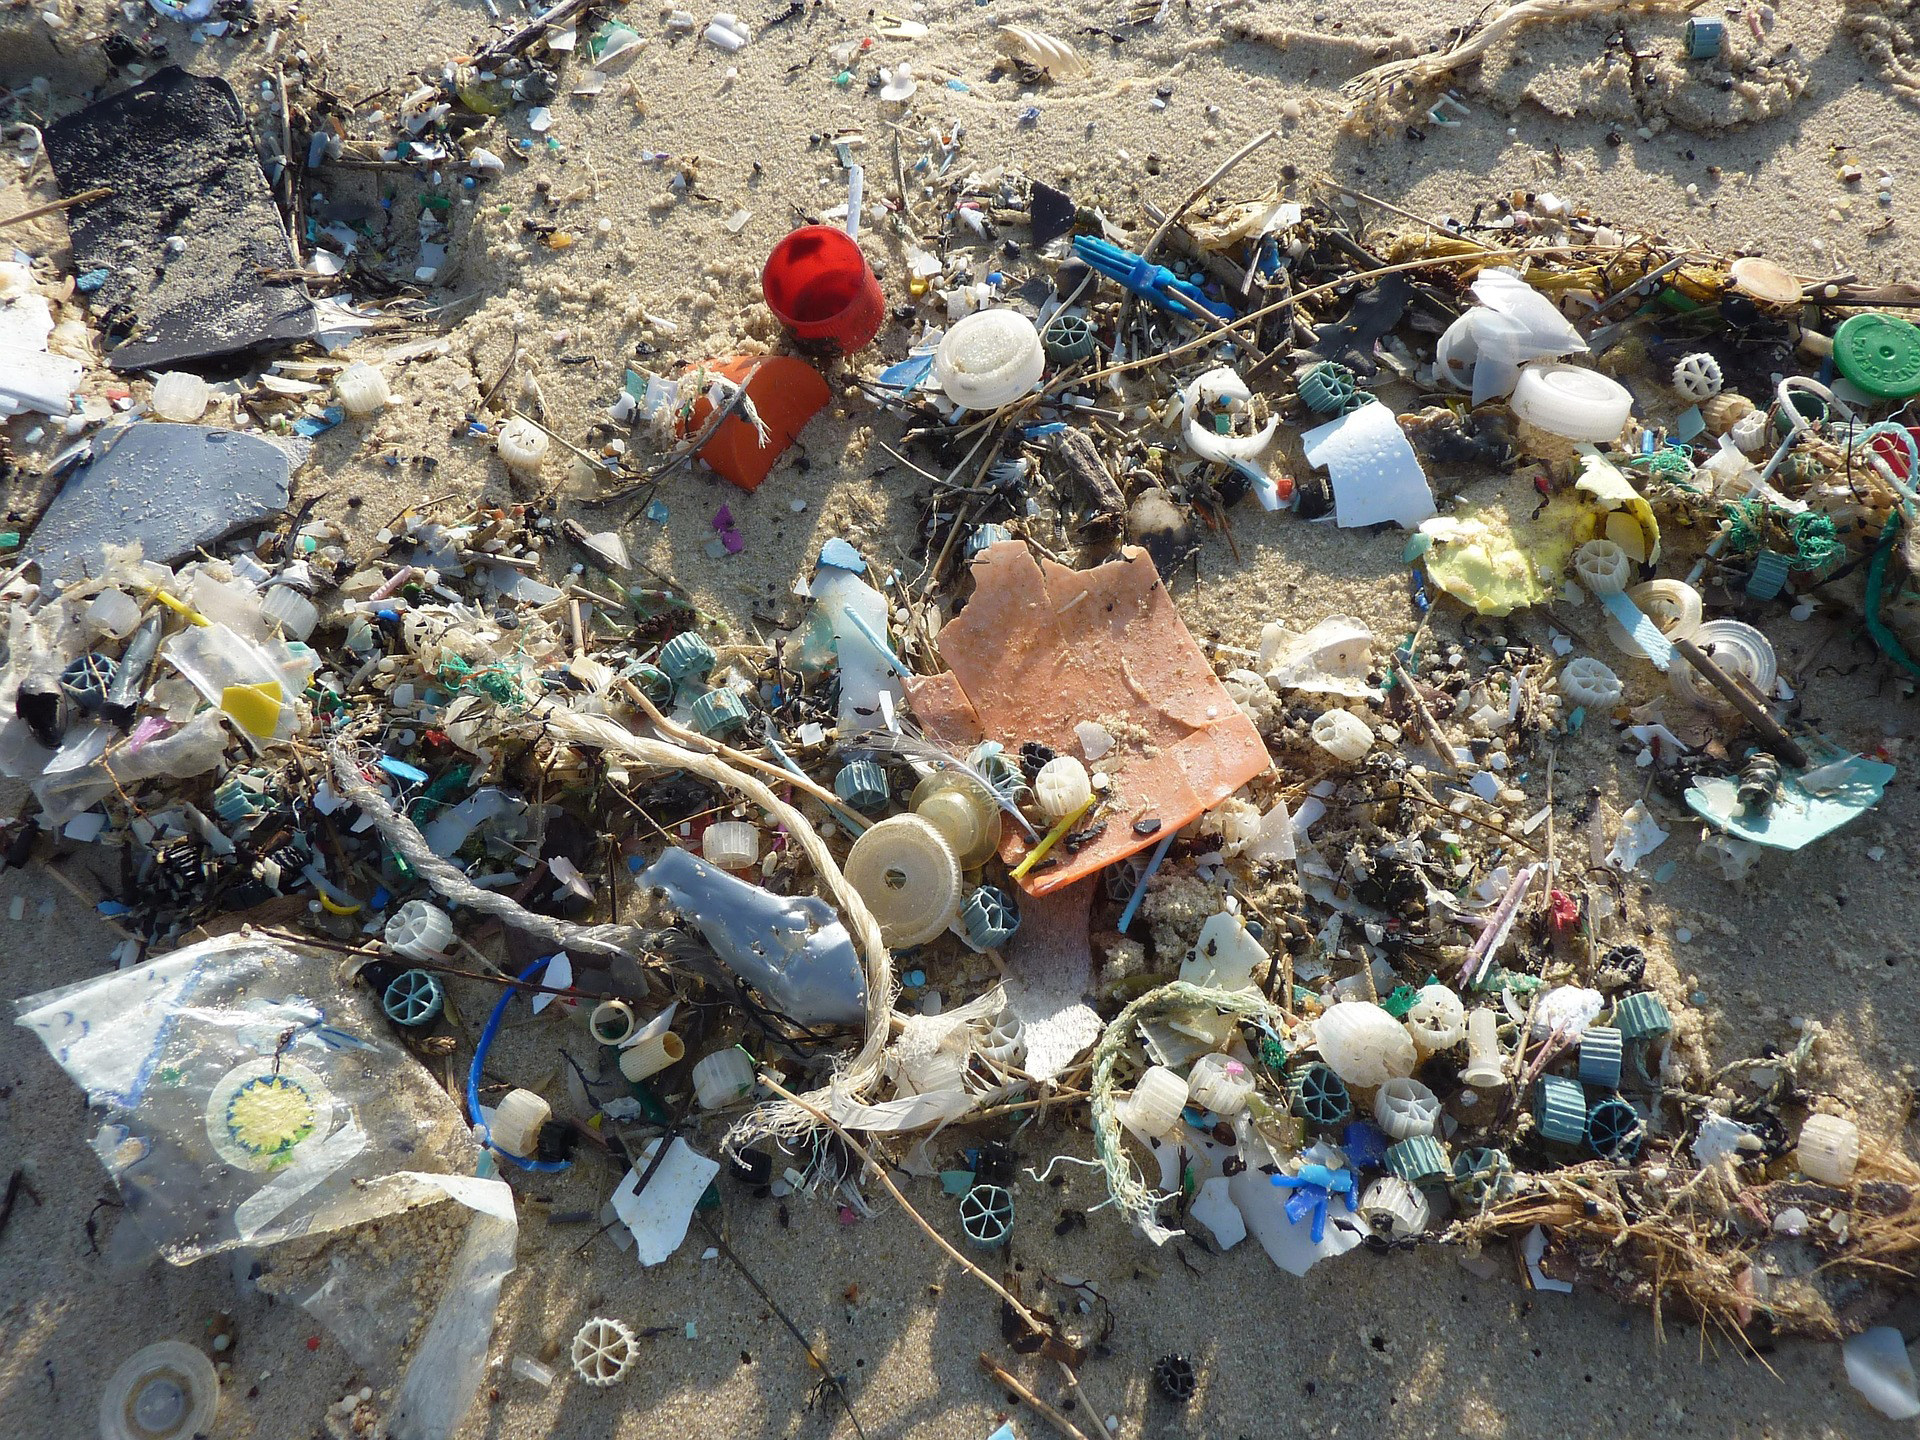 Photos of plastic in the ocean. Courtesy of Pixabay